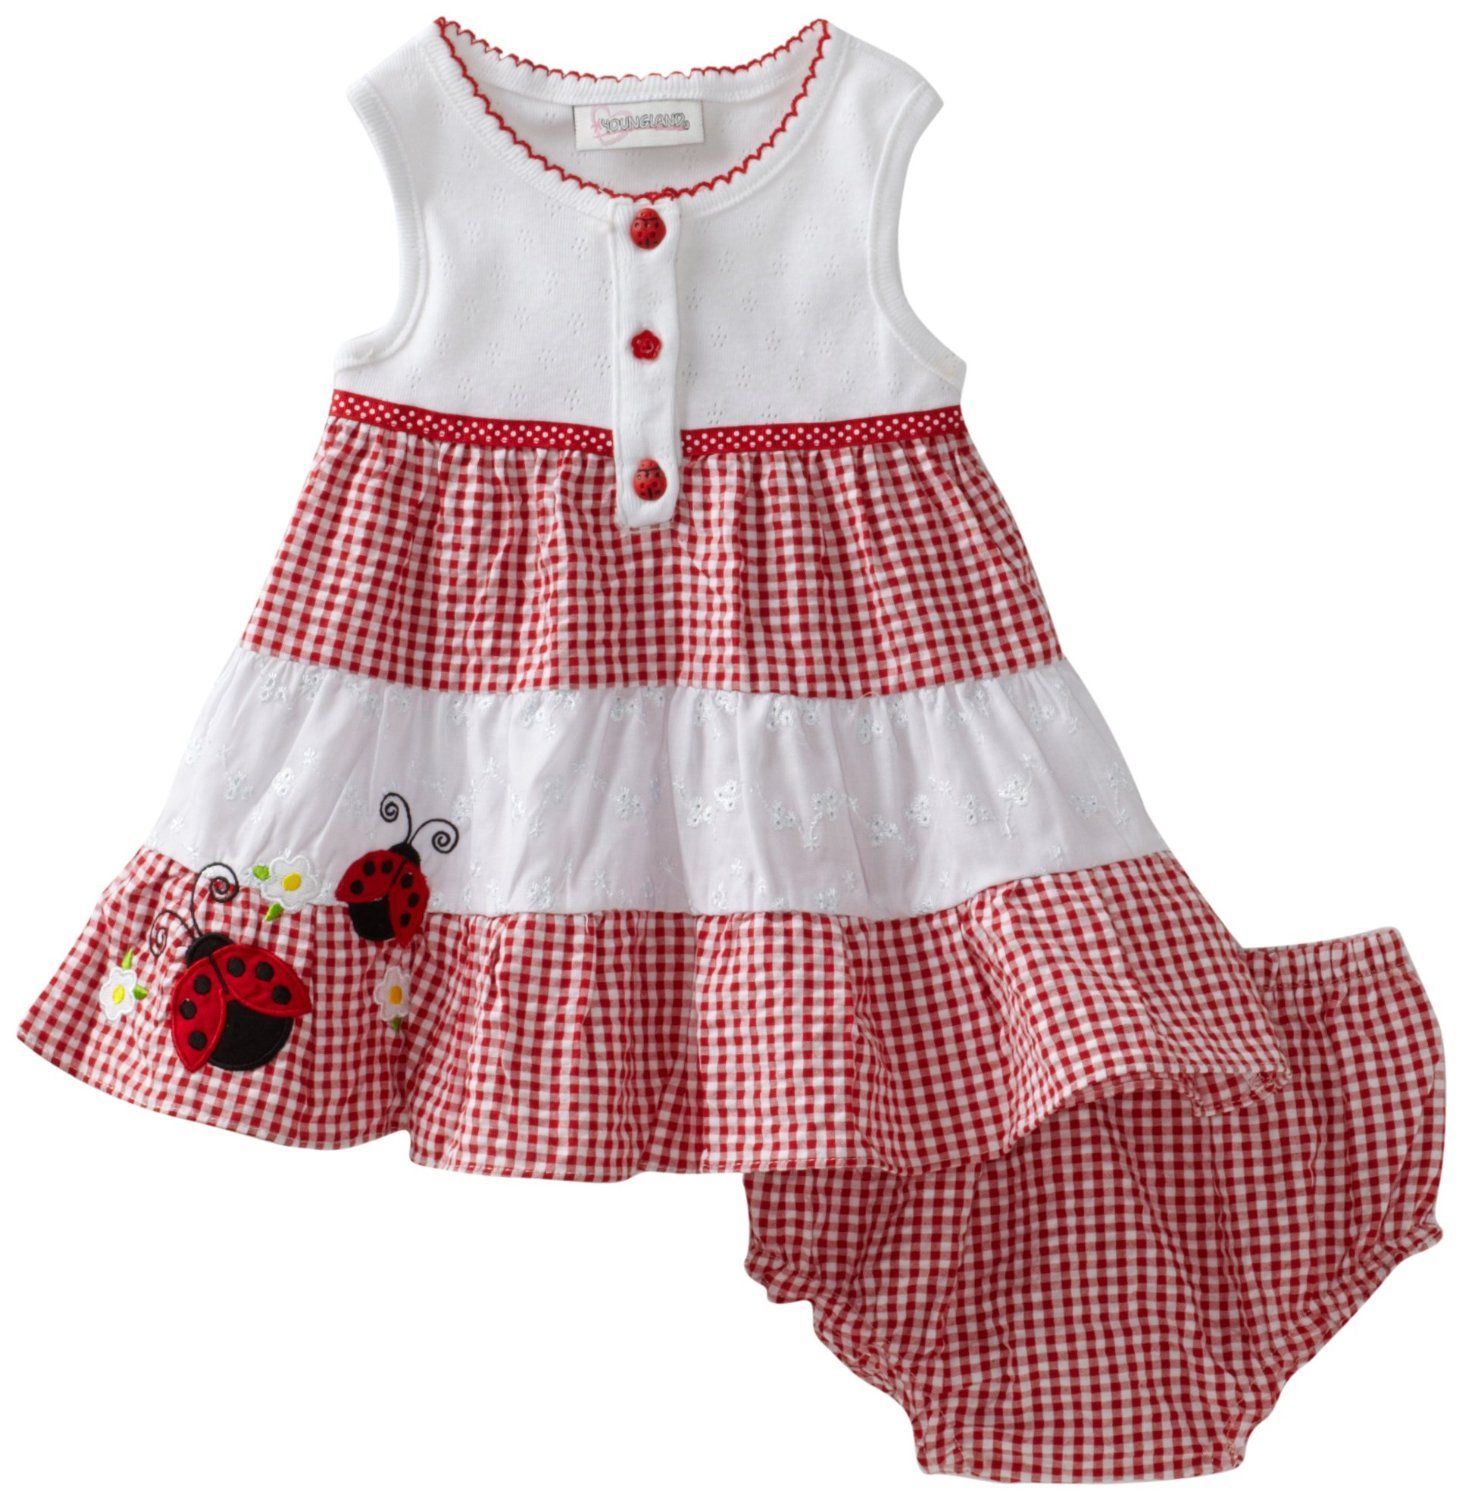 Youngland Baby Girls Infant Ladybug Colorblock Seersucker Sundress